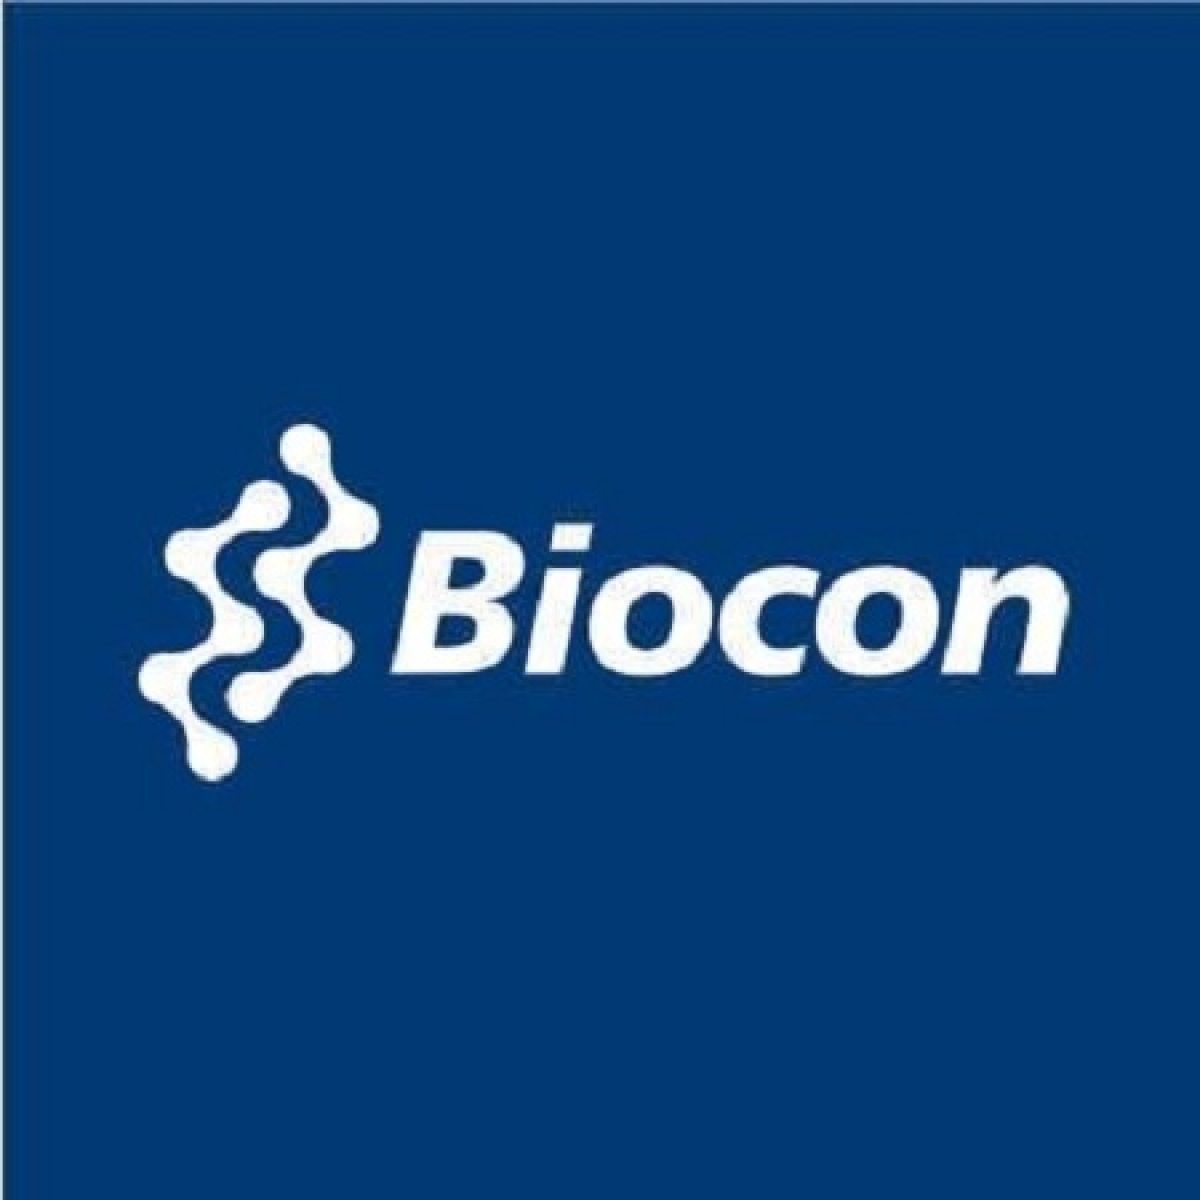 Biocon shares decline nearly 4 pc after Q1 earnings